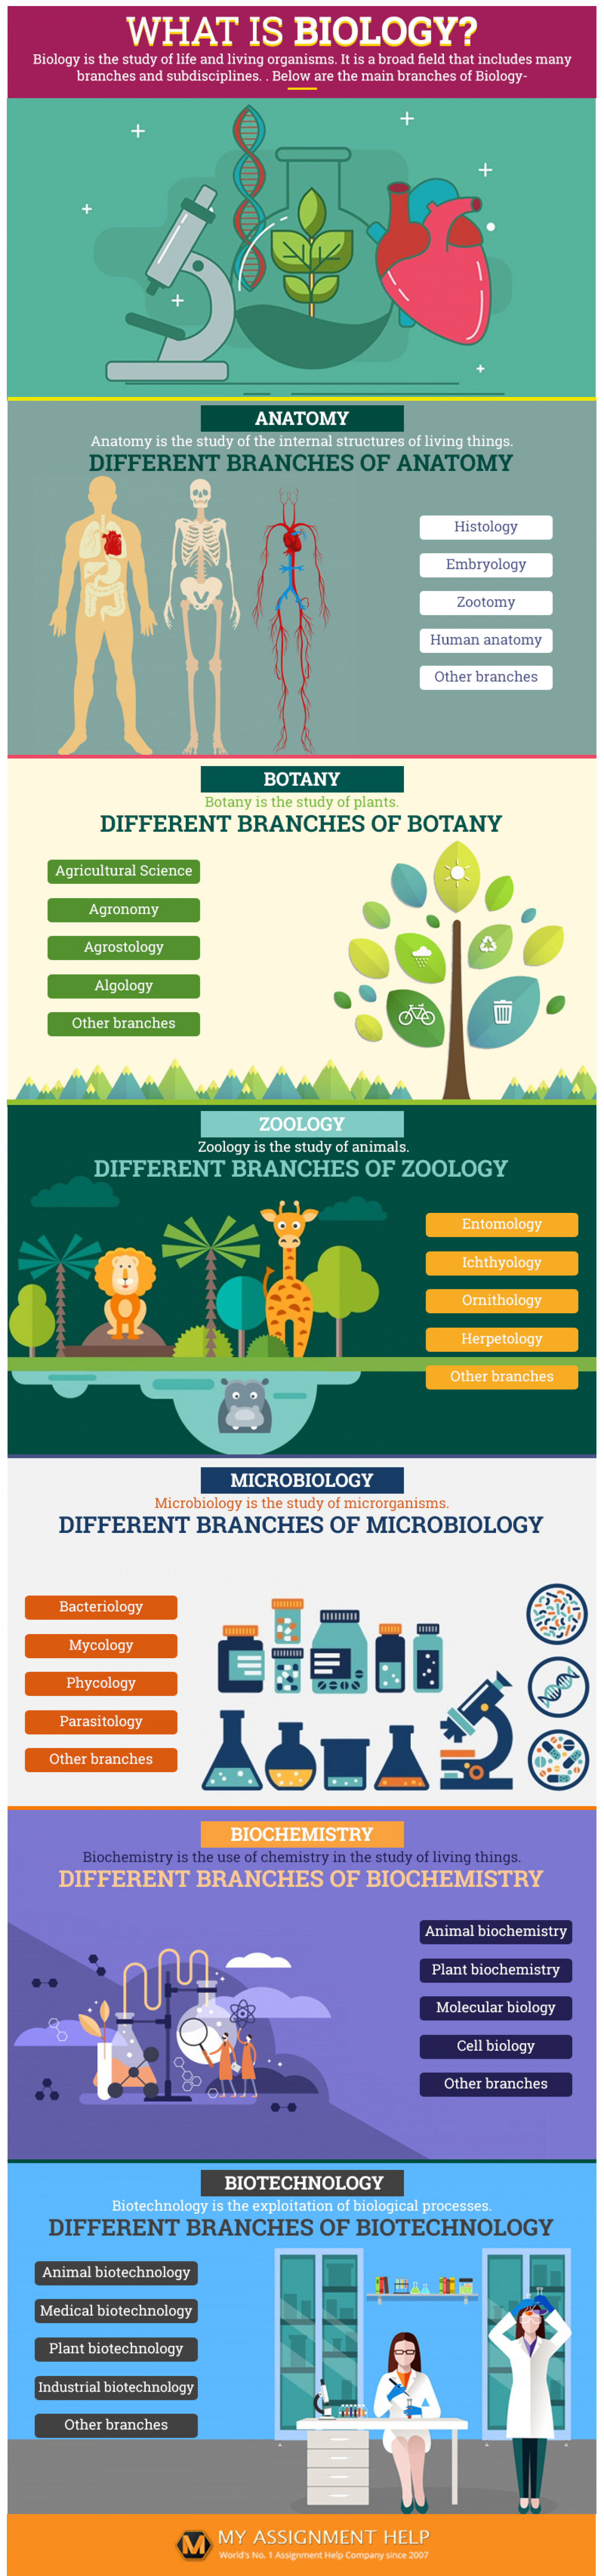 What Is Biology? Infographic